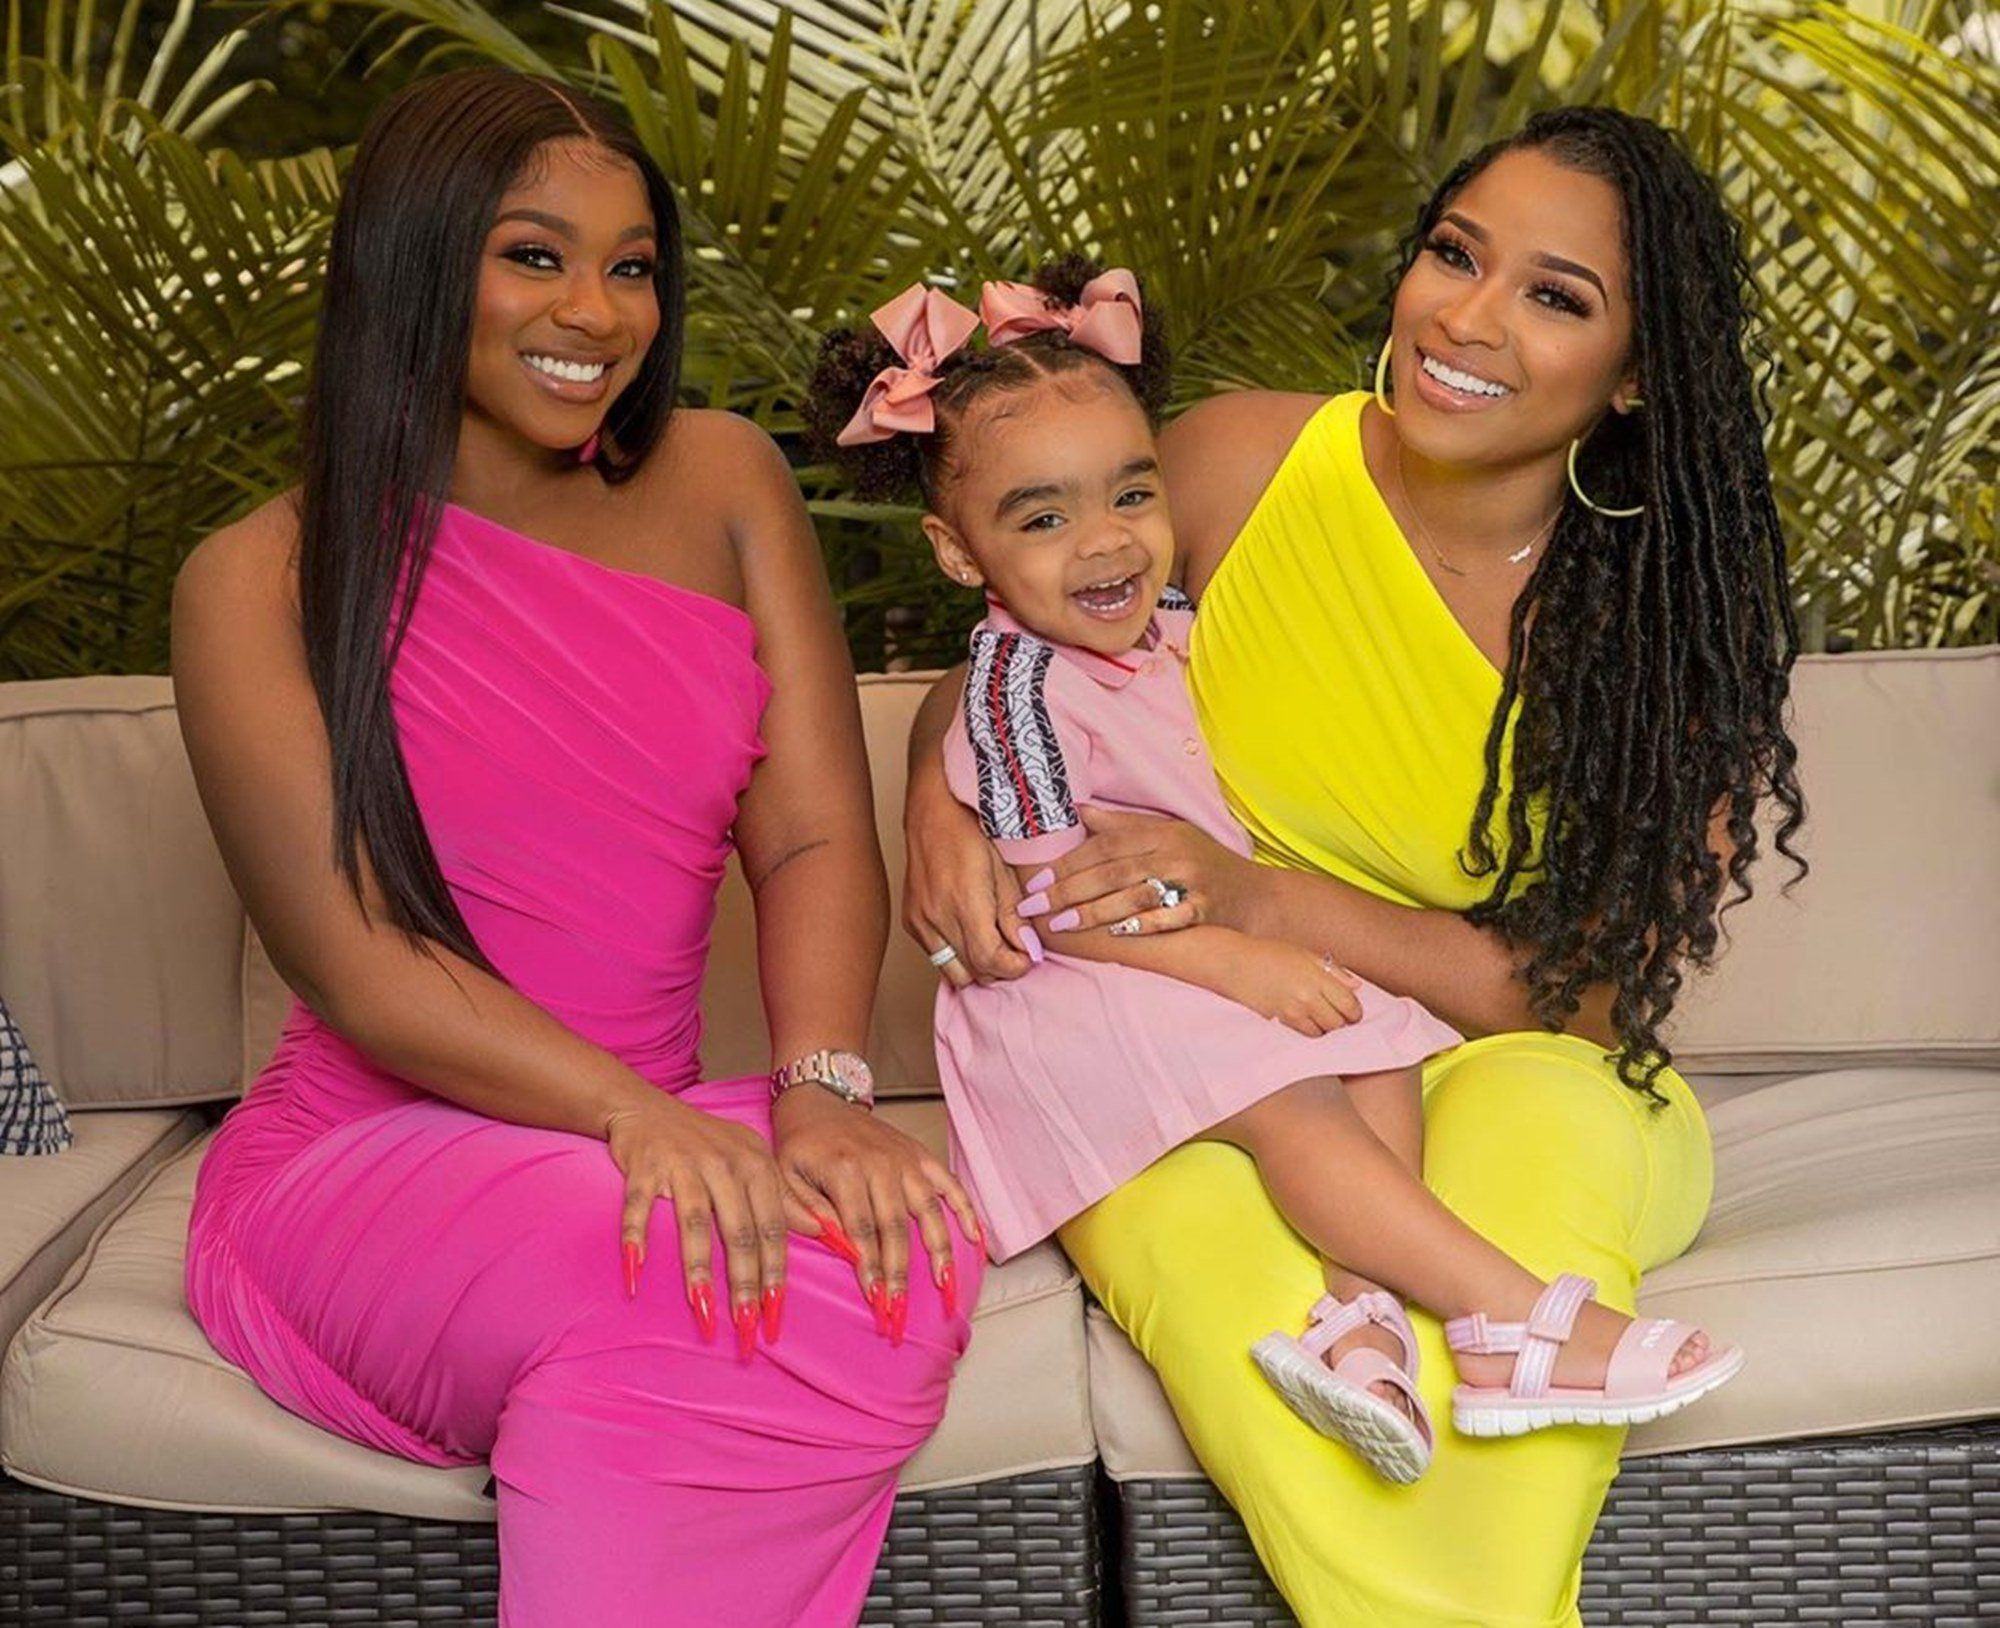 Reginae Carter Claps Back At Hater Who Criticized Her Hair